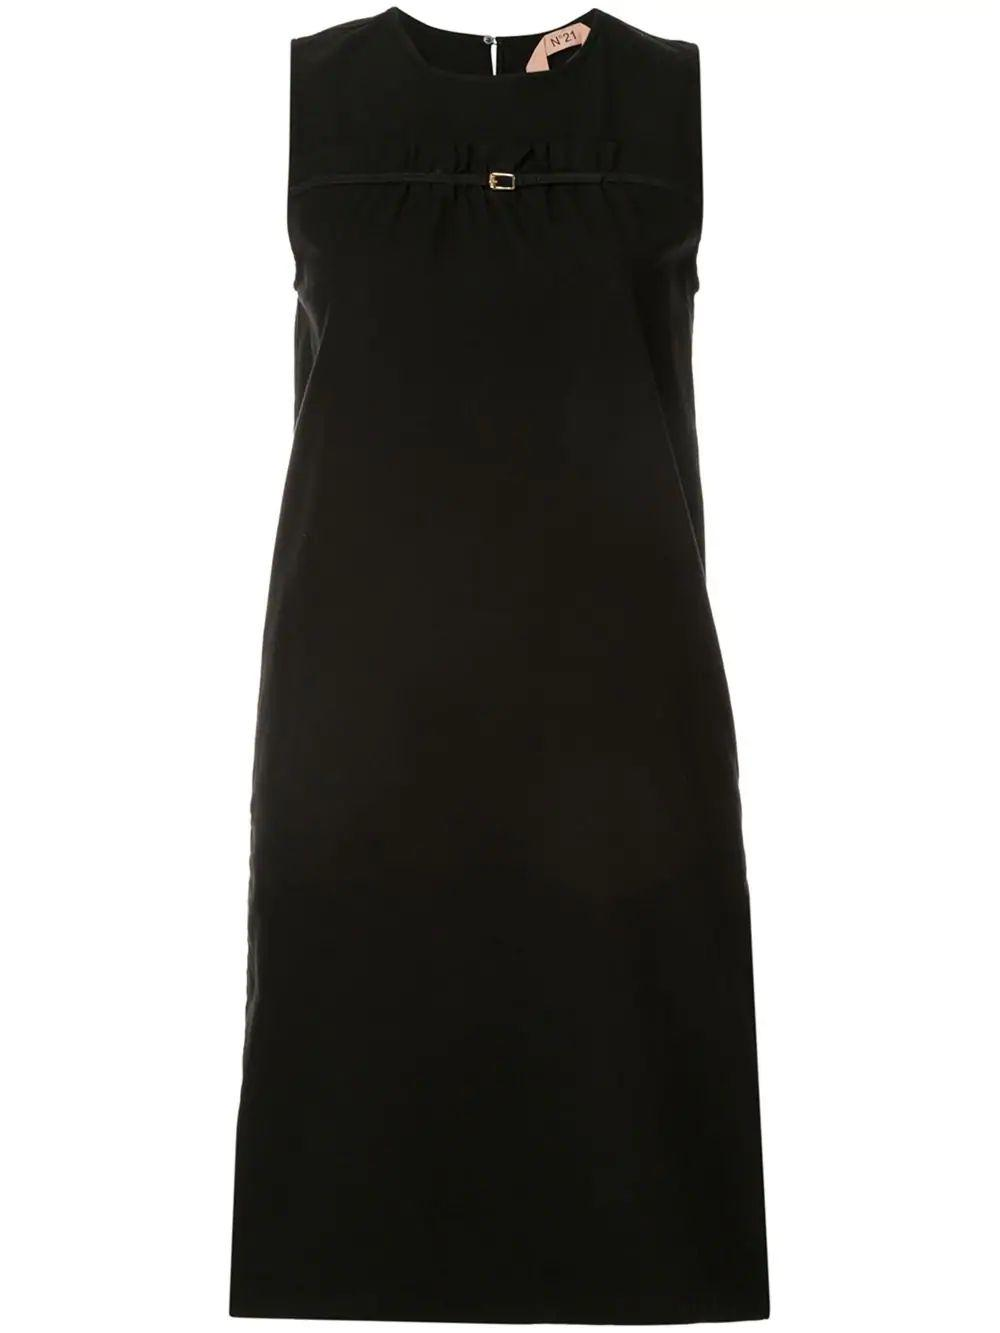 Sleeveless Shift Dress With Buckle Detail Item # H123-0637-9000